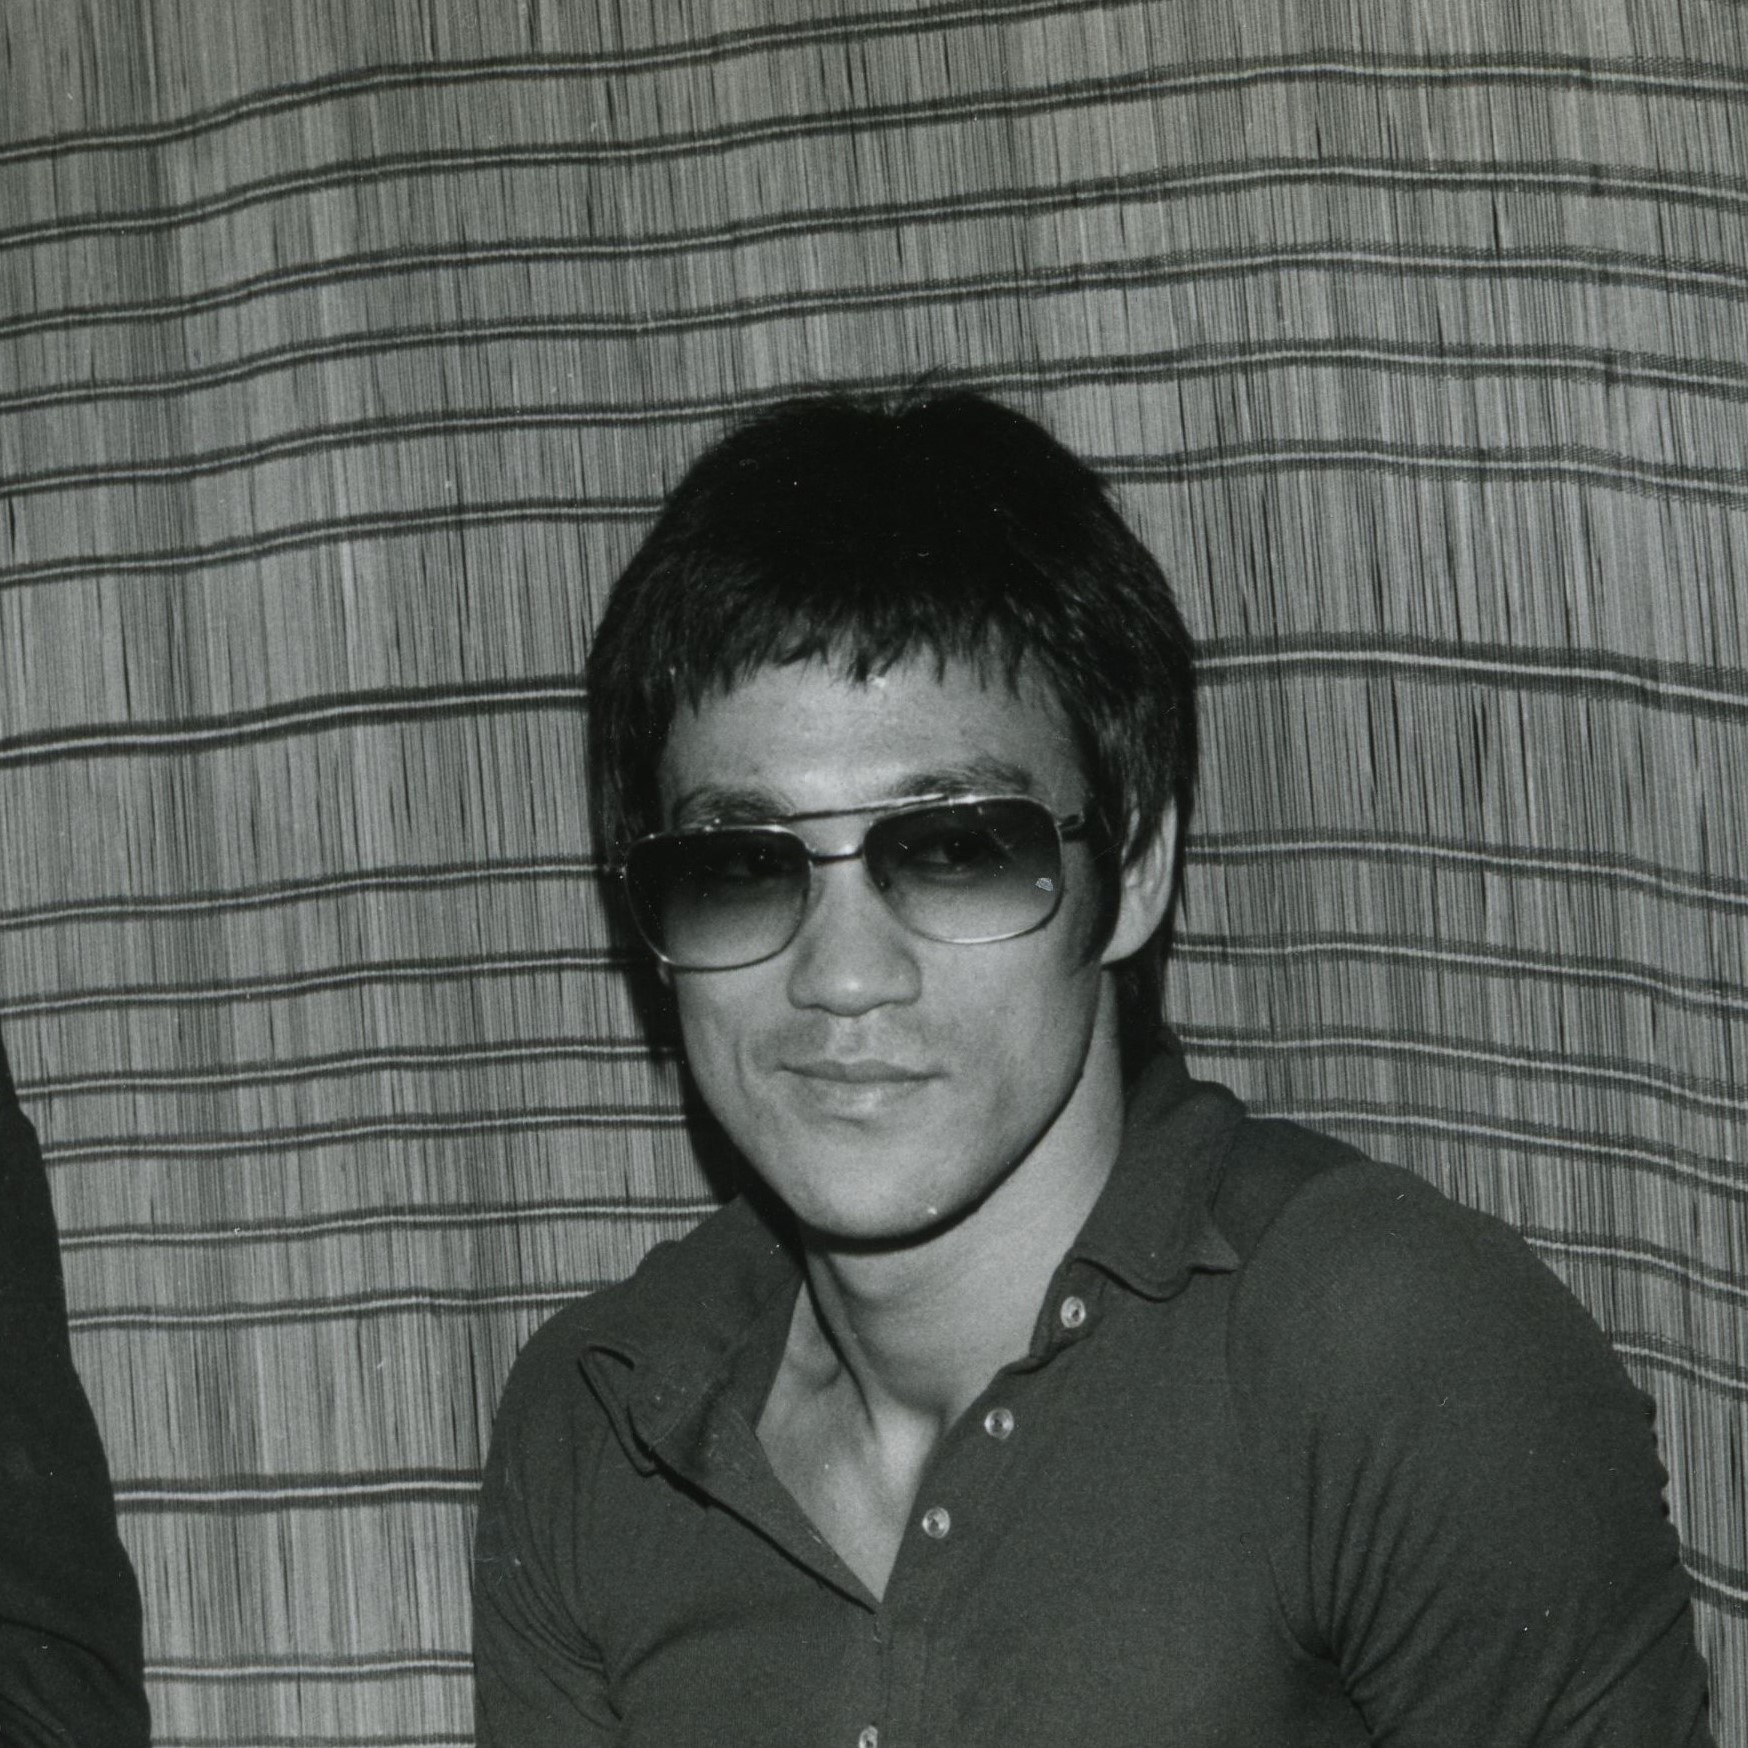 Bruce Lee Gold Metal Sunglasses